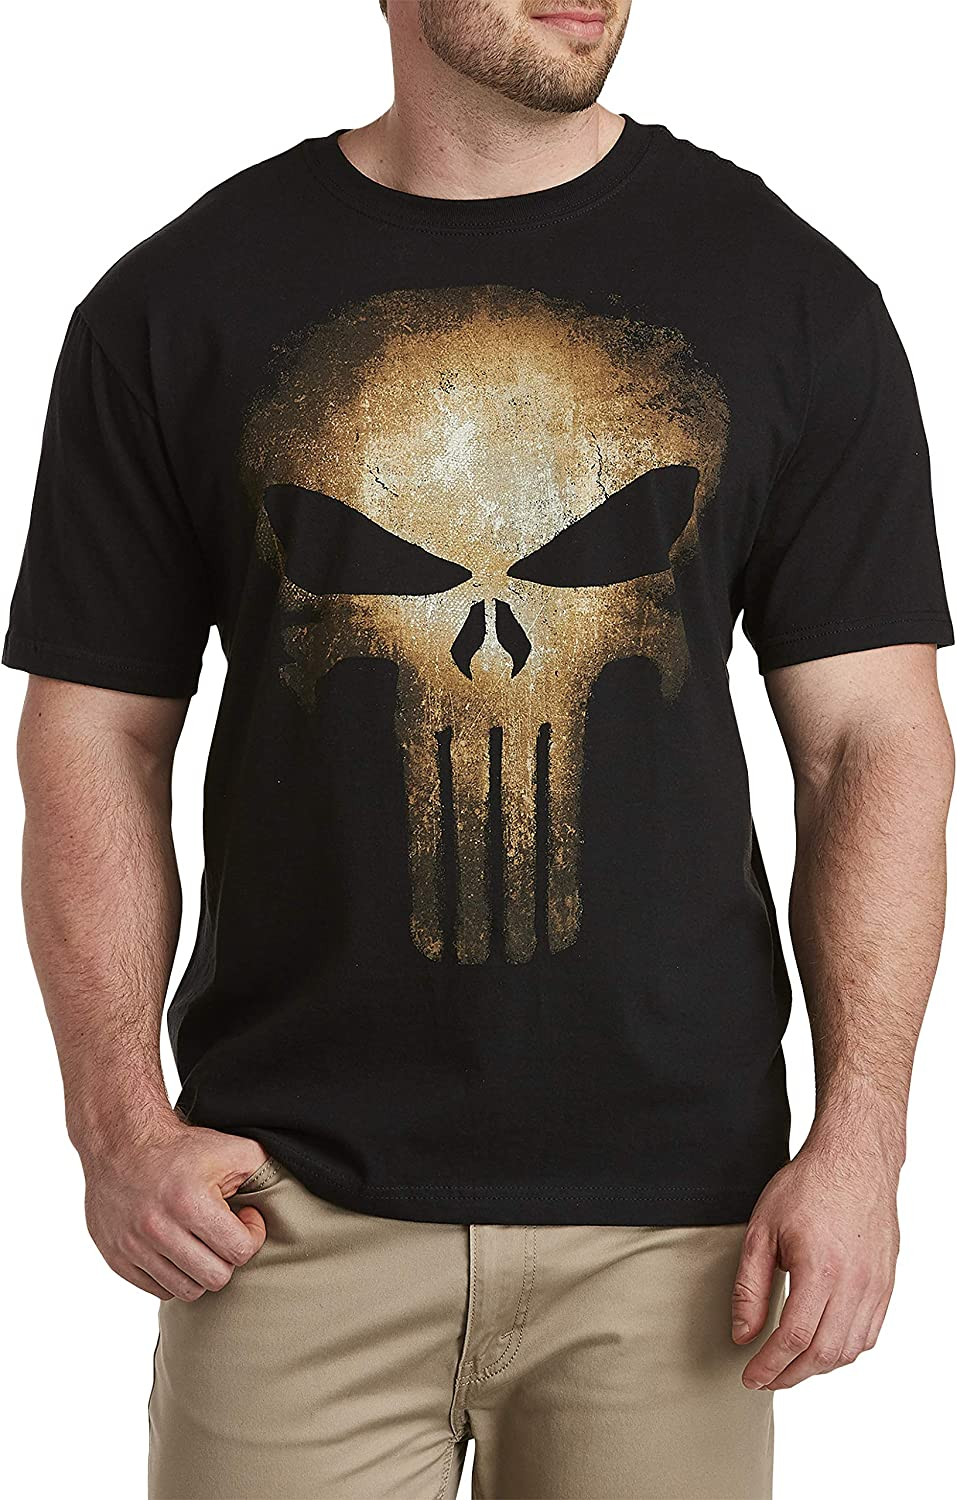 True Nation by DXL OFFicial Big and Black Aged Punisher Tall Graphic Tee Easy-to-use